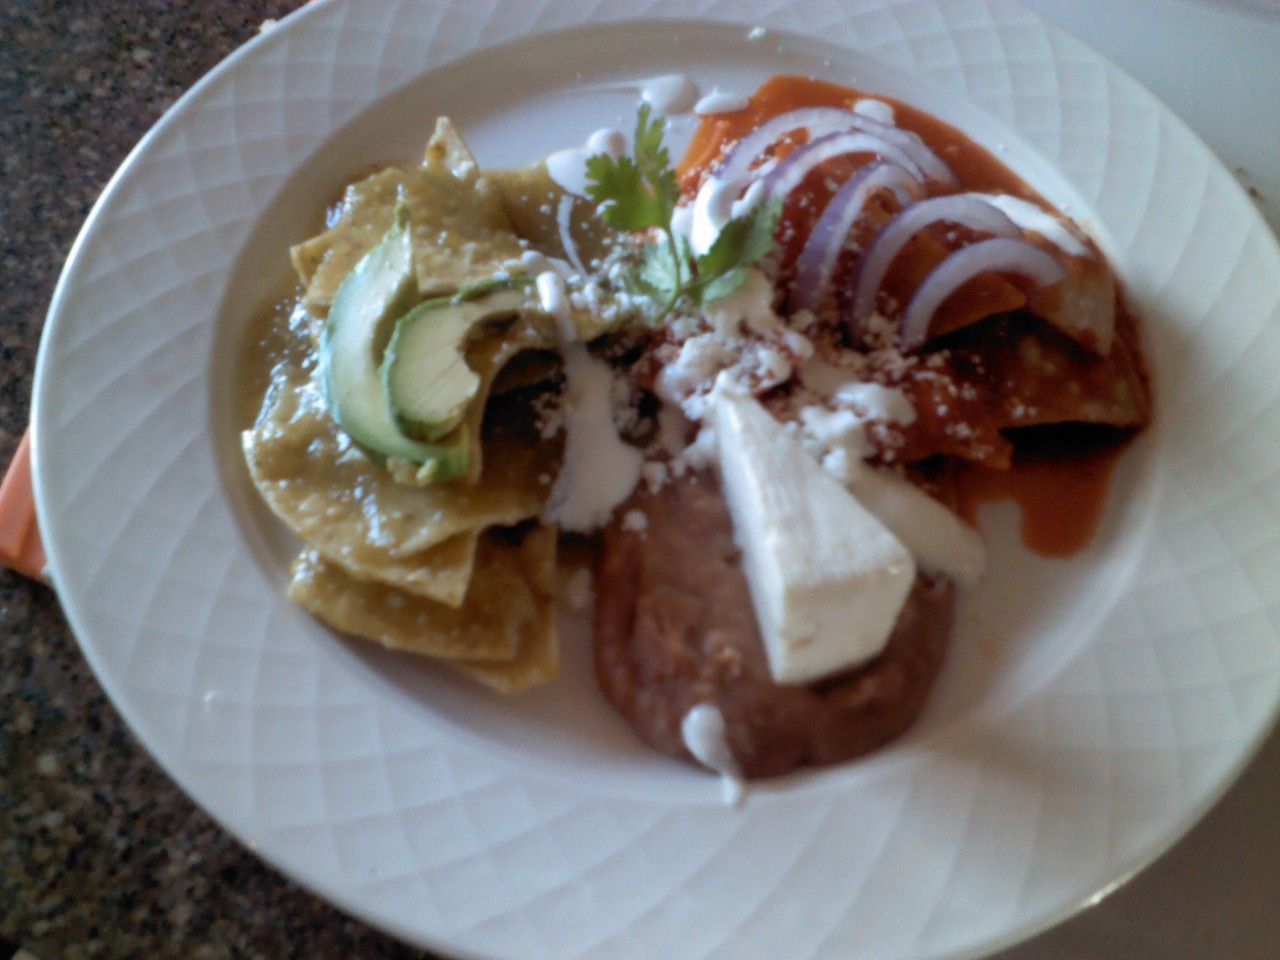 Enjoy our delicious chilaquiles, accompanied by our famous green and red sauces and let yourself be pampered with the fresh flavors of Baja California.